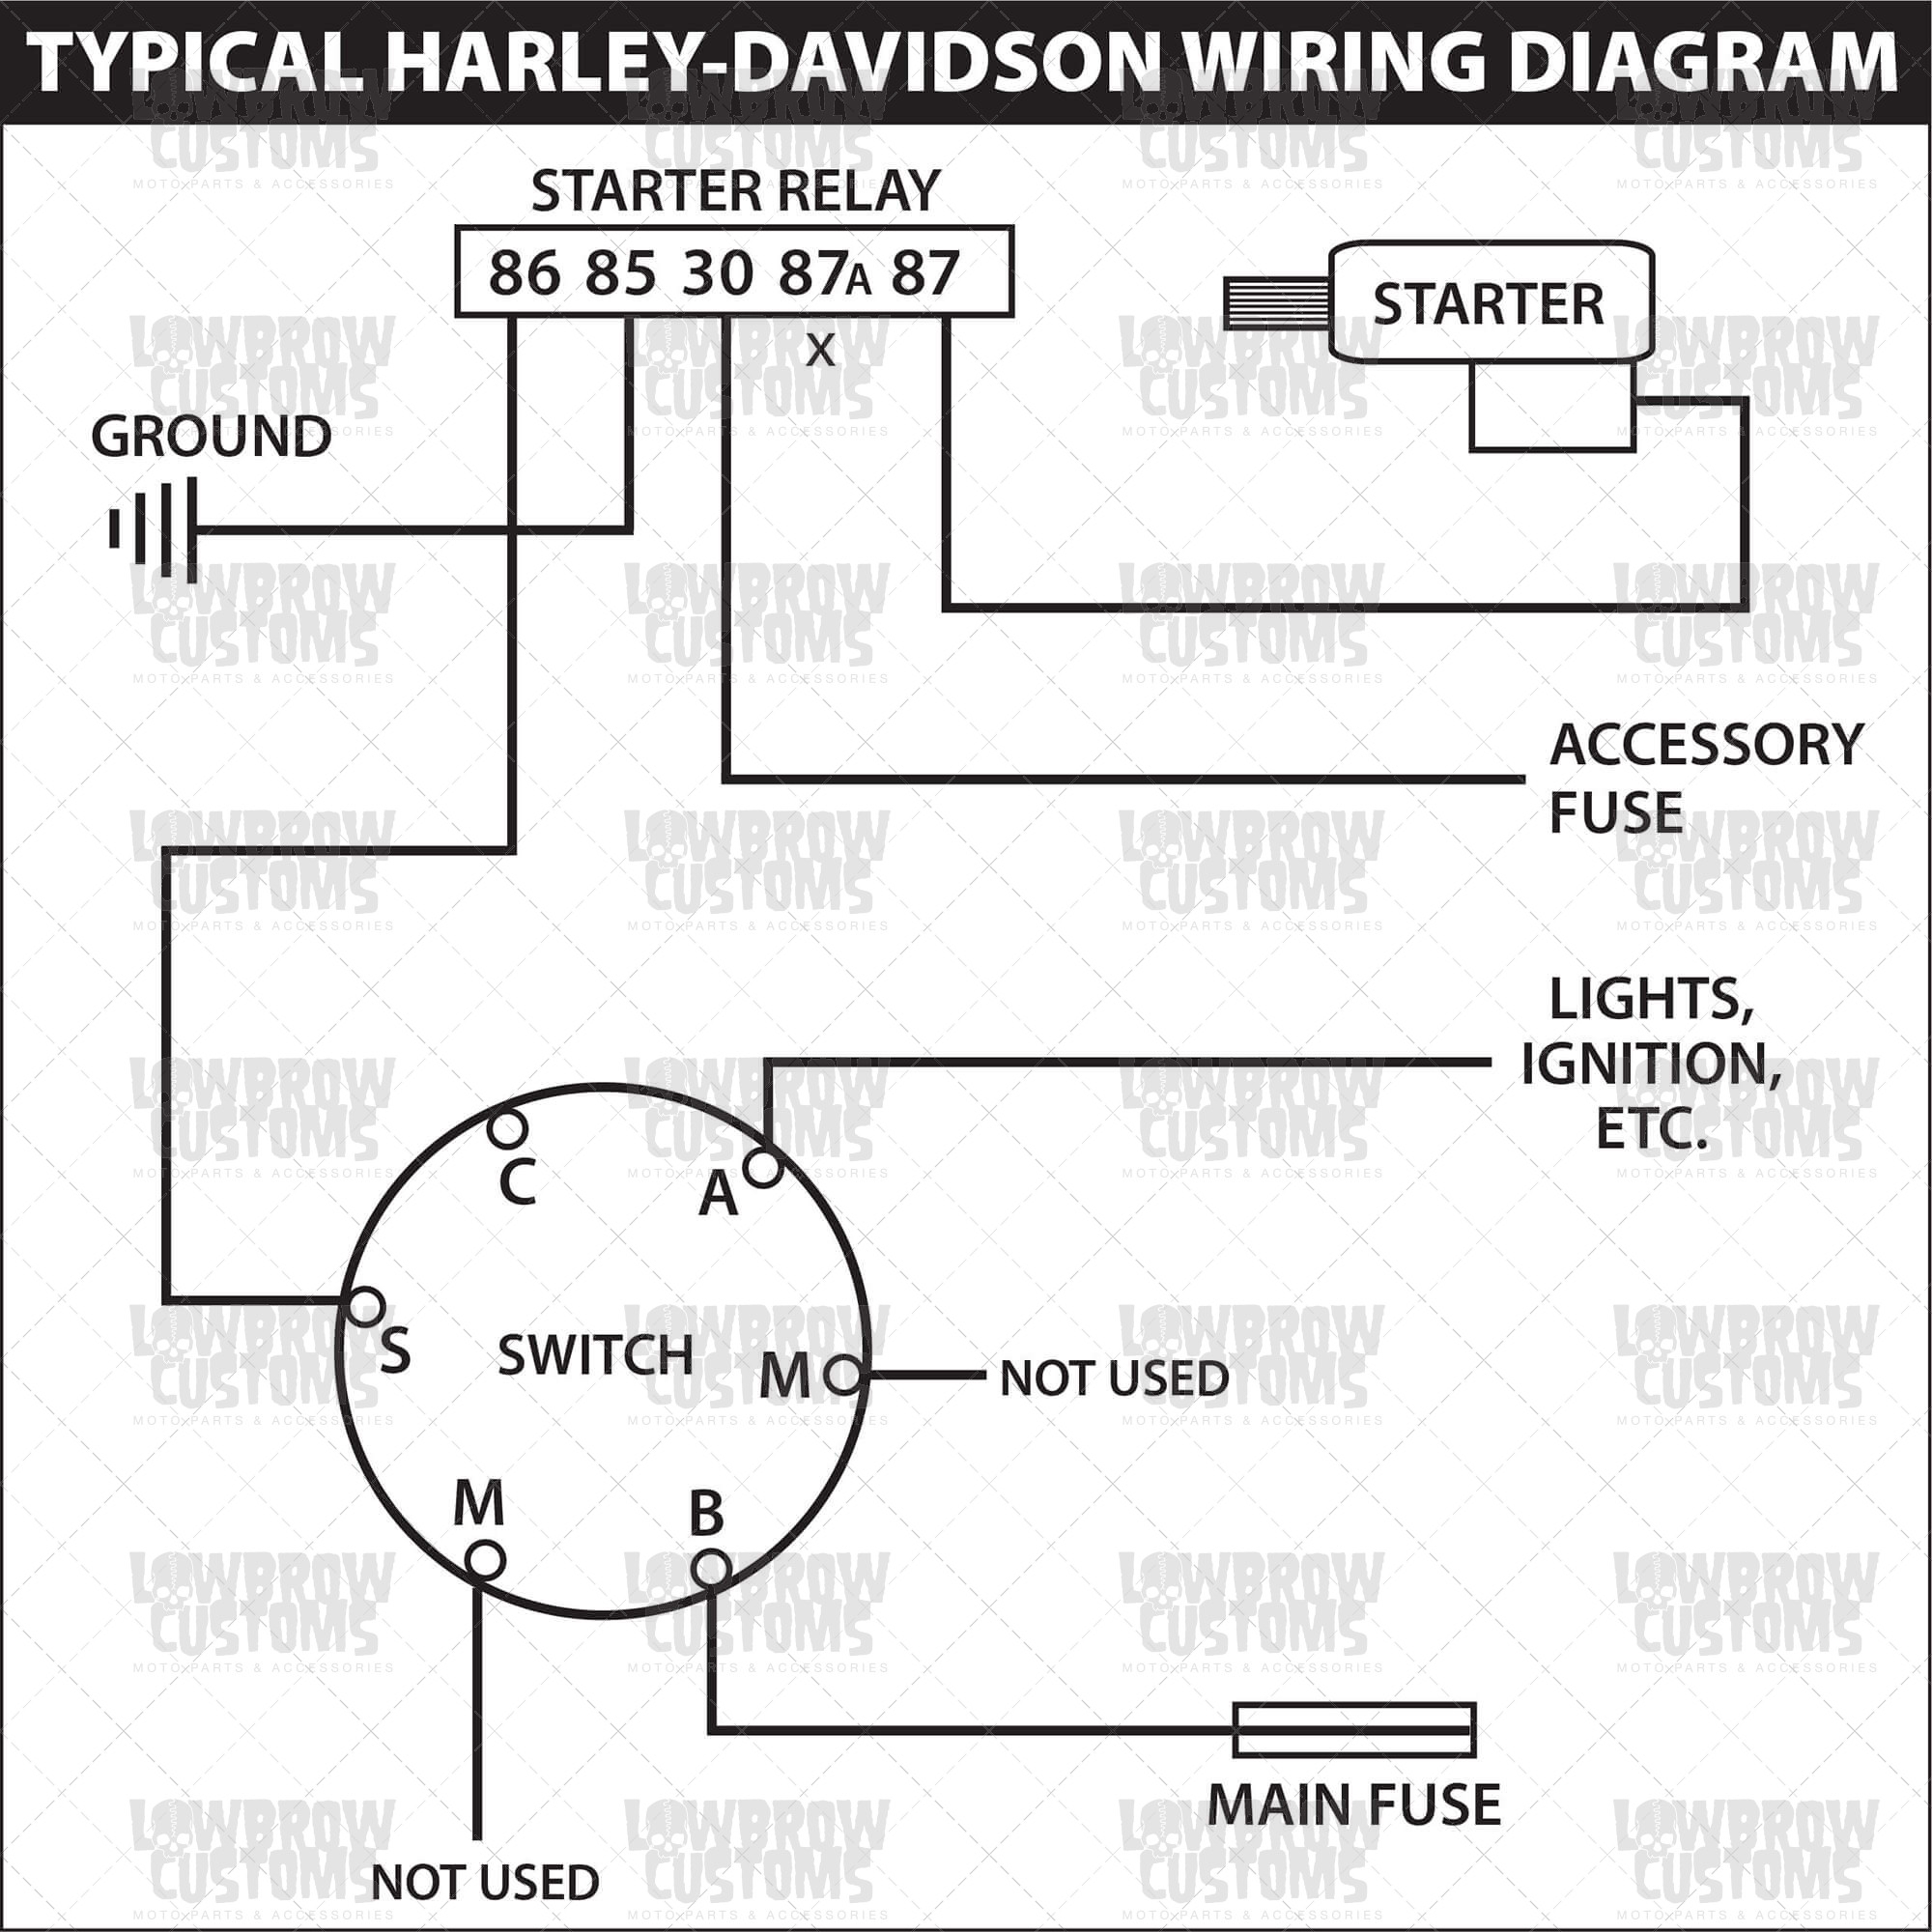 4 Wire Ignition Switch Wiring Diagram | Wiring Library - Motorcycle Ignition Switch Wiring Diagram